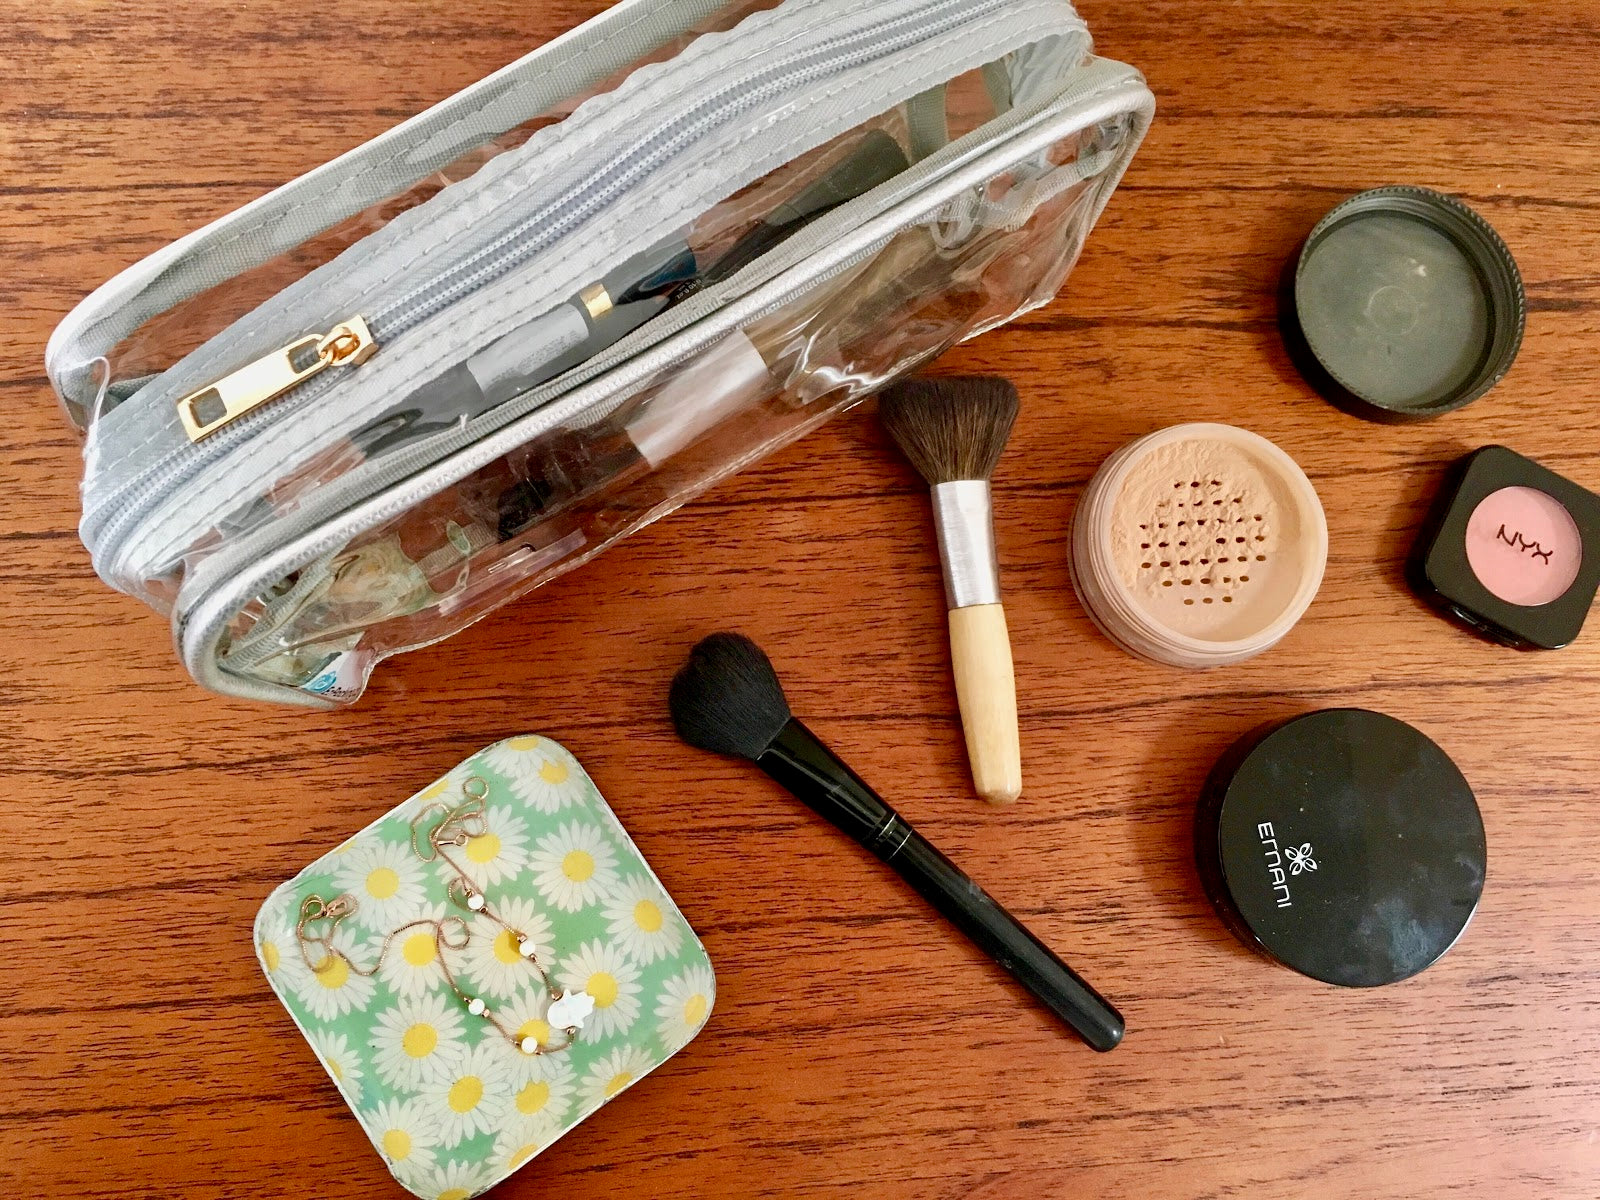 Packing tried and tested makeup tip